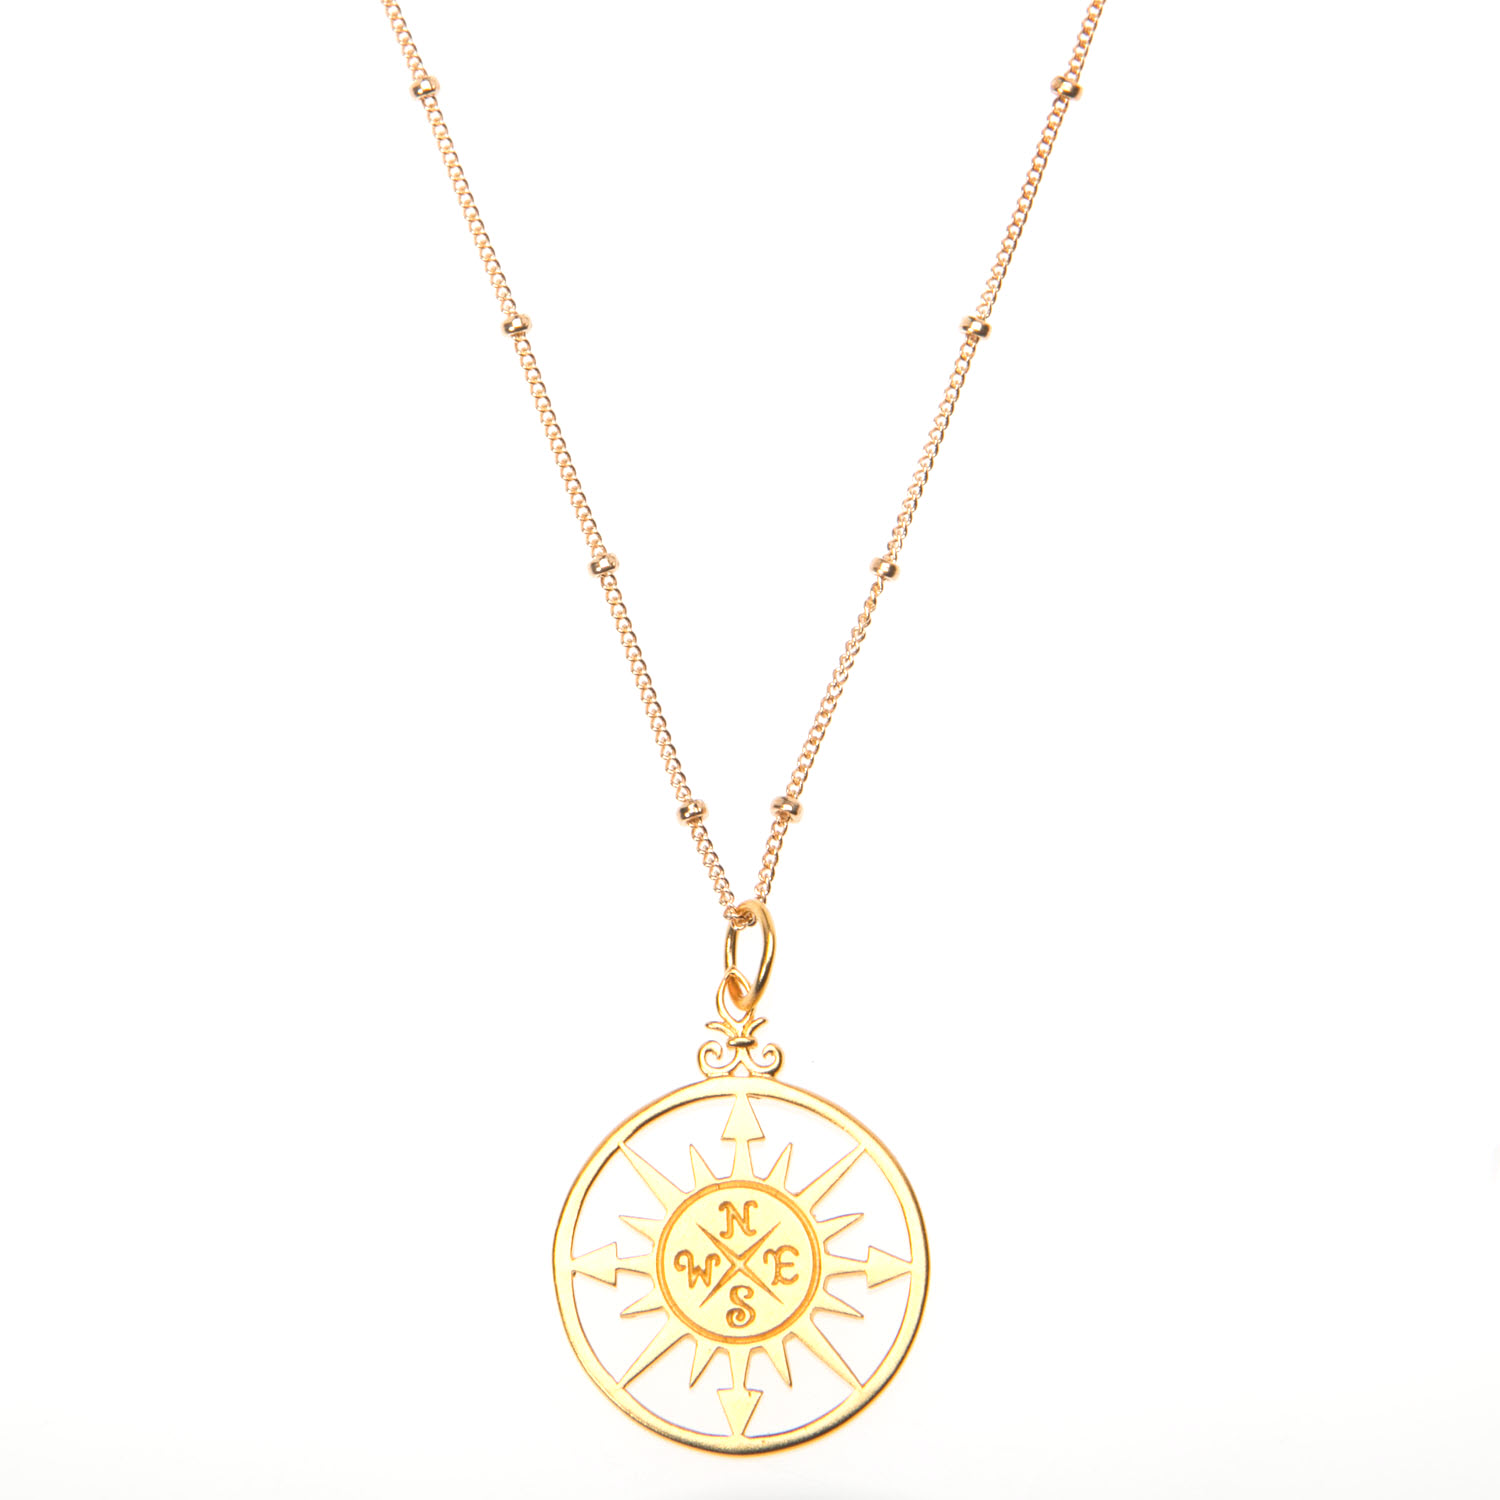 Gold Vermeil Compass Pendant Necklace